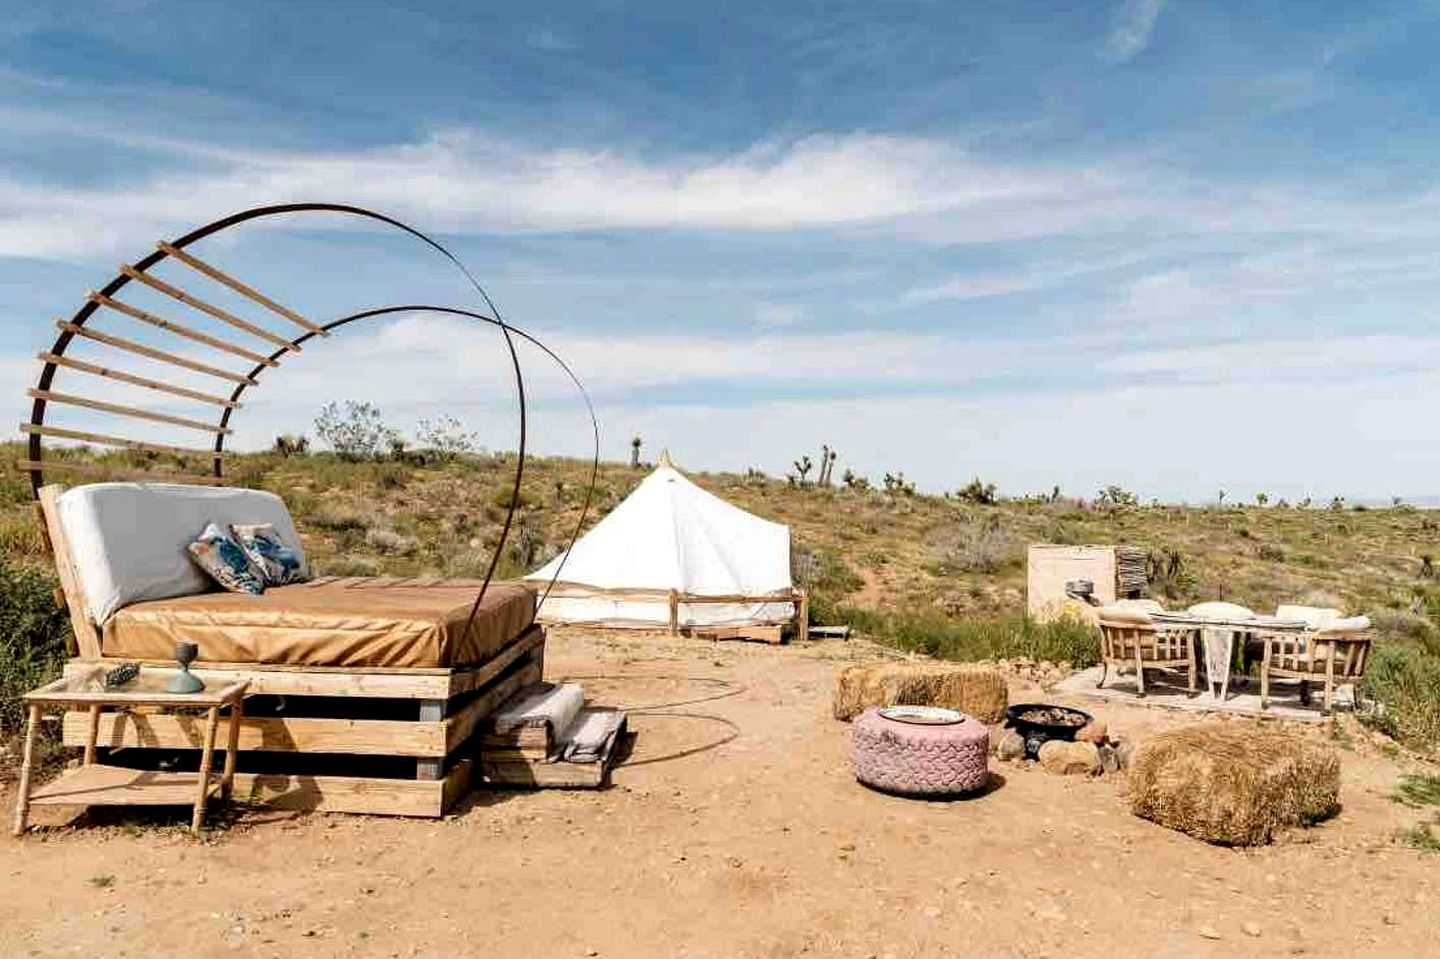 Bell tent rental that's ideal to go glamping in California